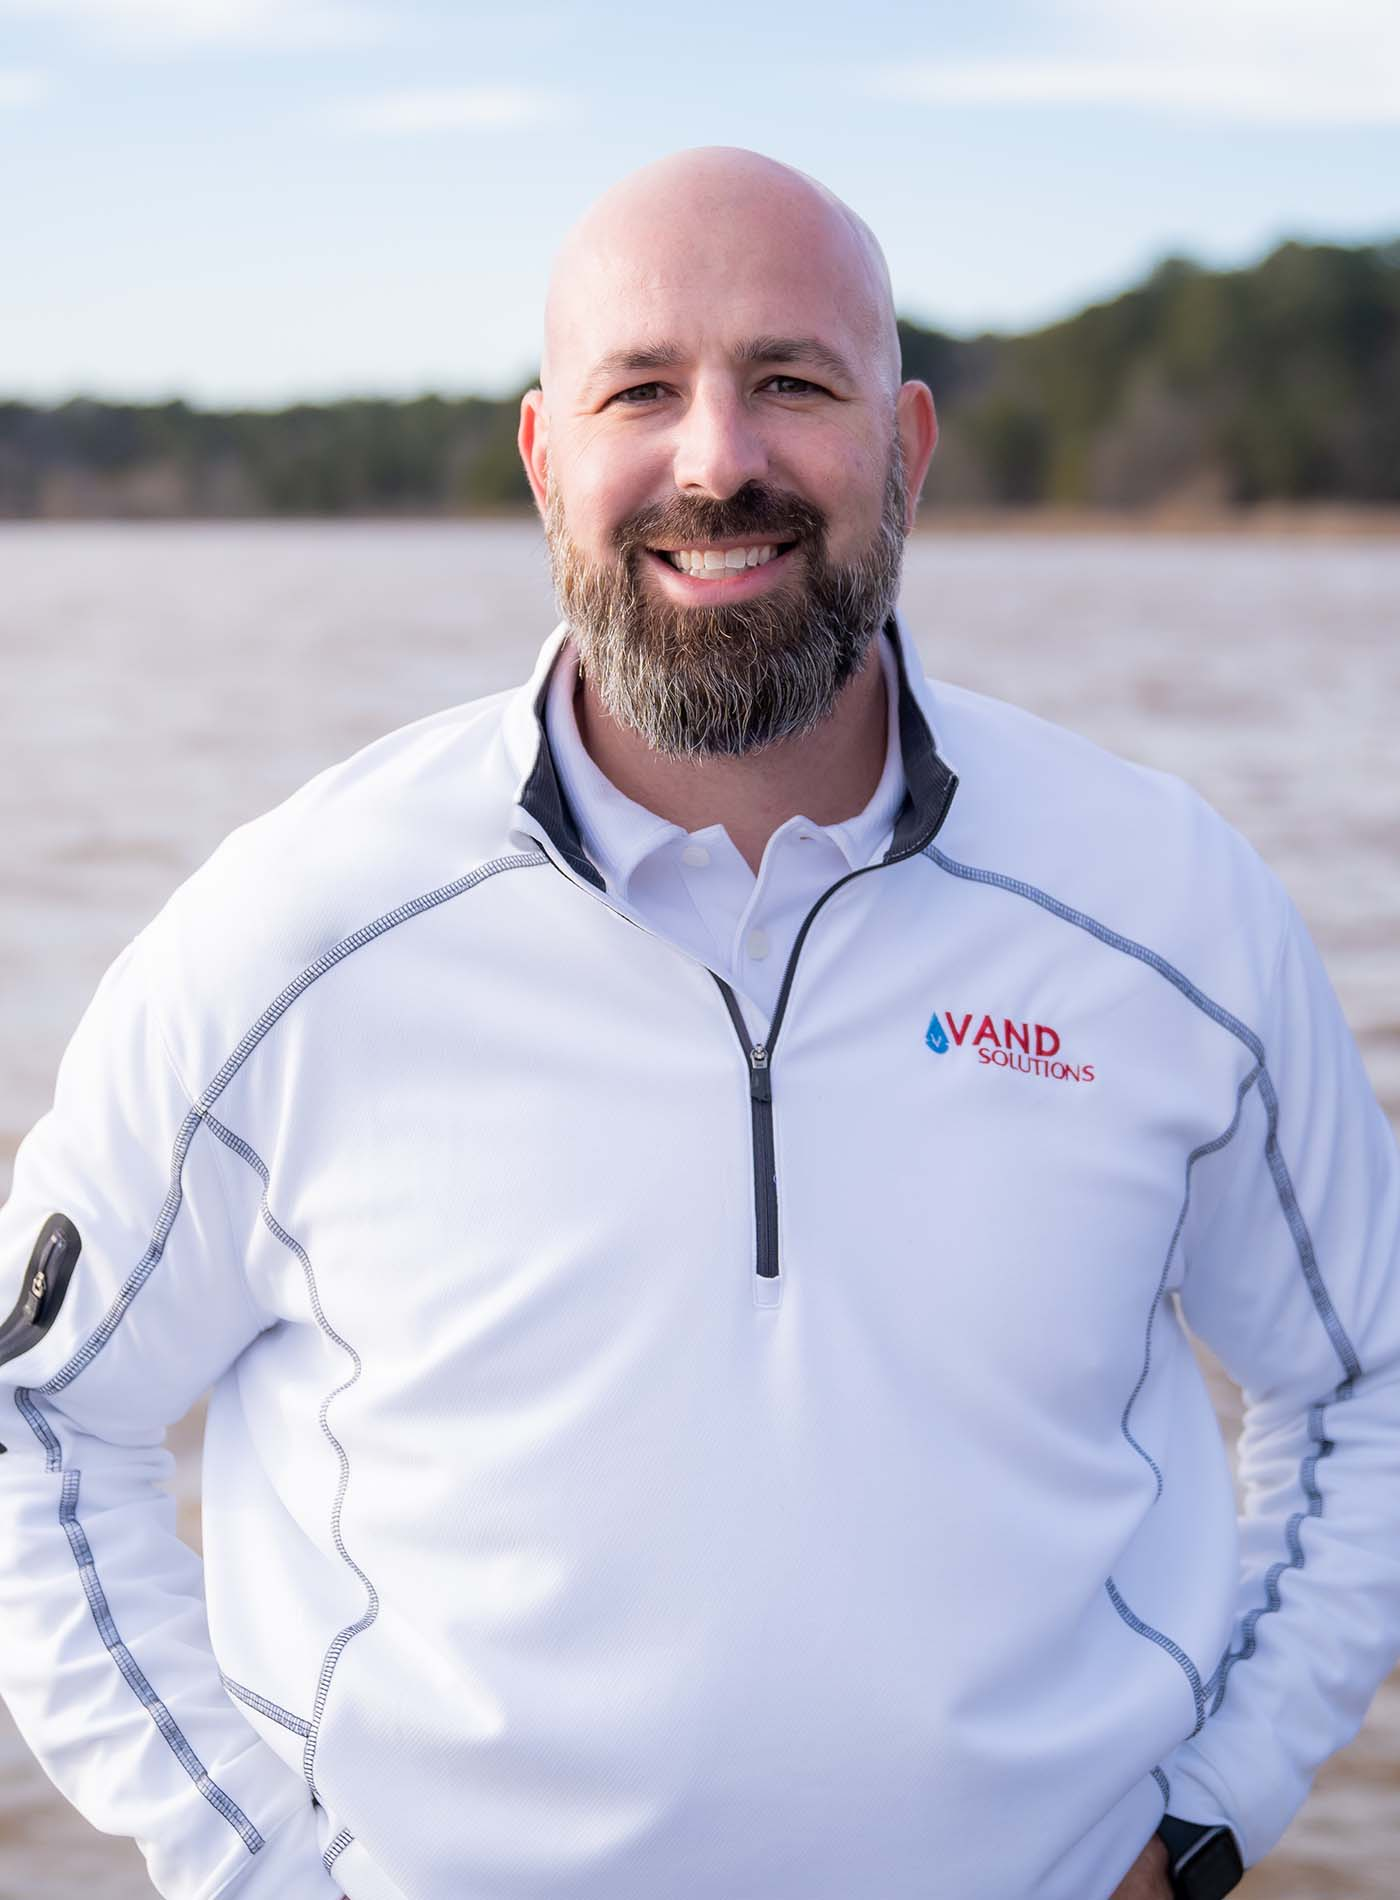 Lucas Magrini is Vand Solutions head solutions provider and takes serious pride in providing the best solution for your water and wastewater project as possible, even if it doesn't bring him any benefit.